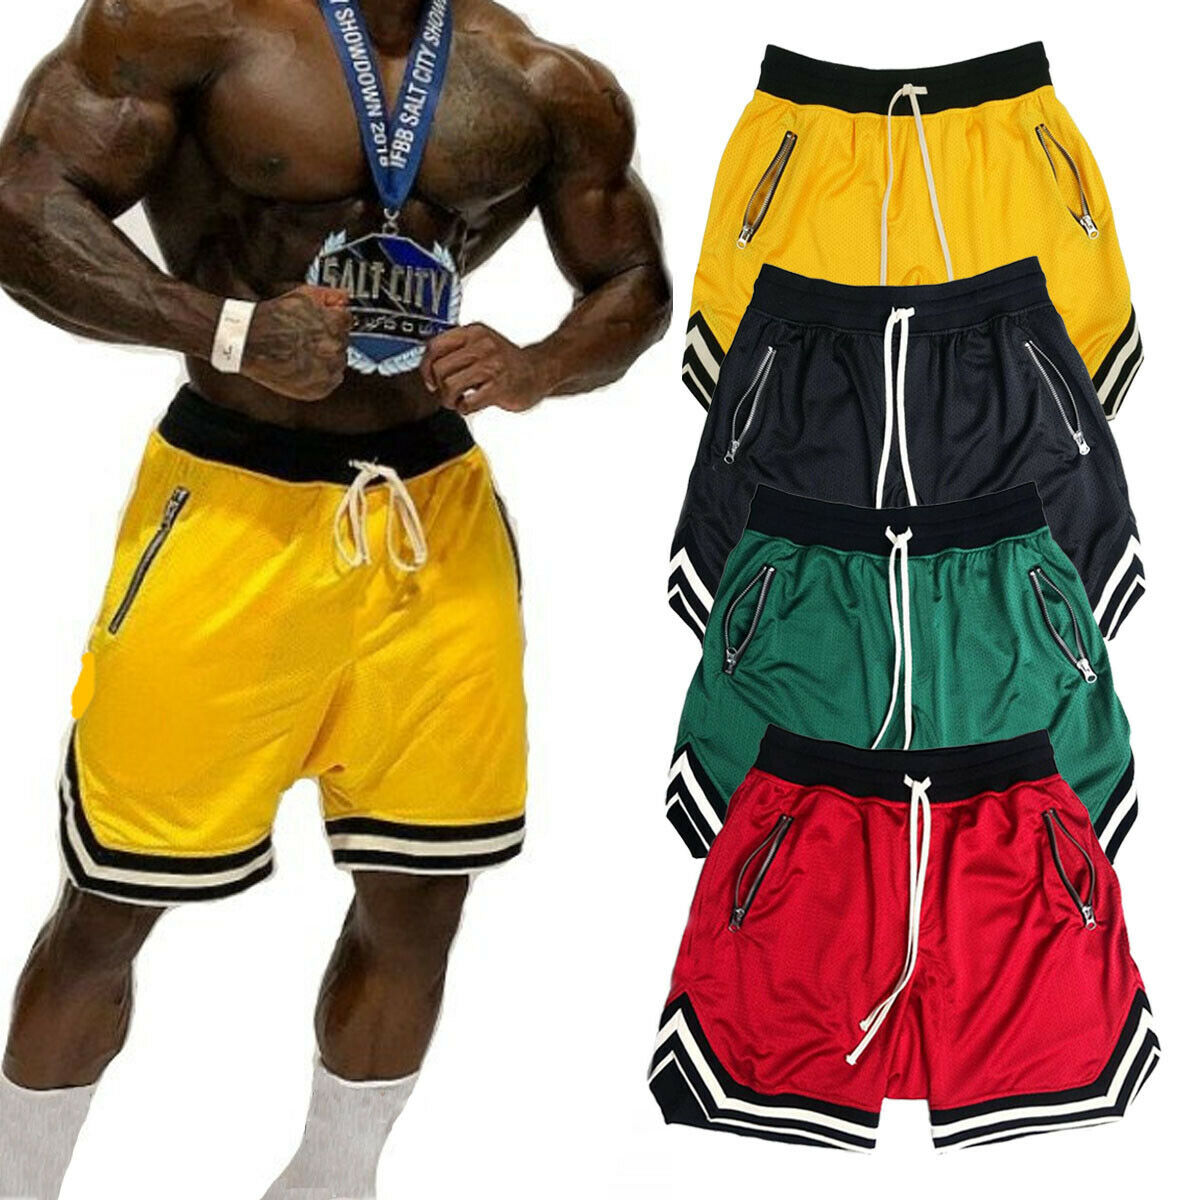 Hirigin Fashion Men's Summer Casual Shorts Gym Sports Training Bodybuilding Shorts